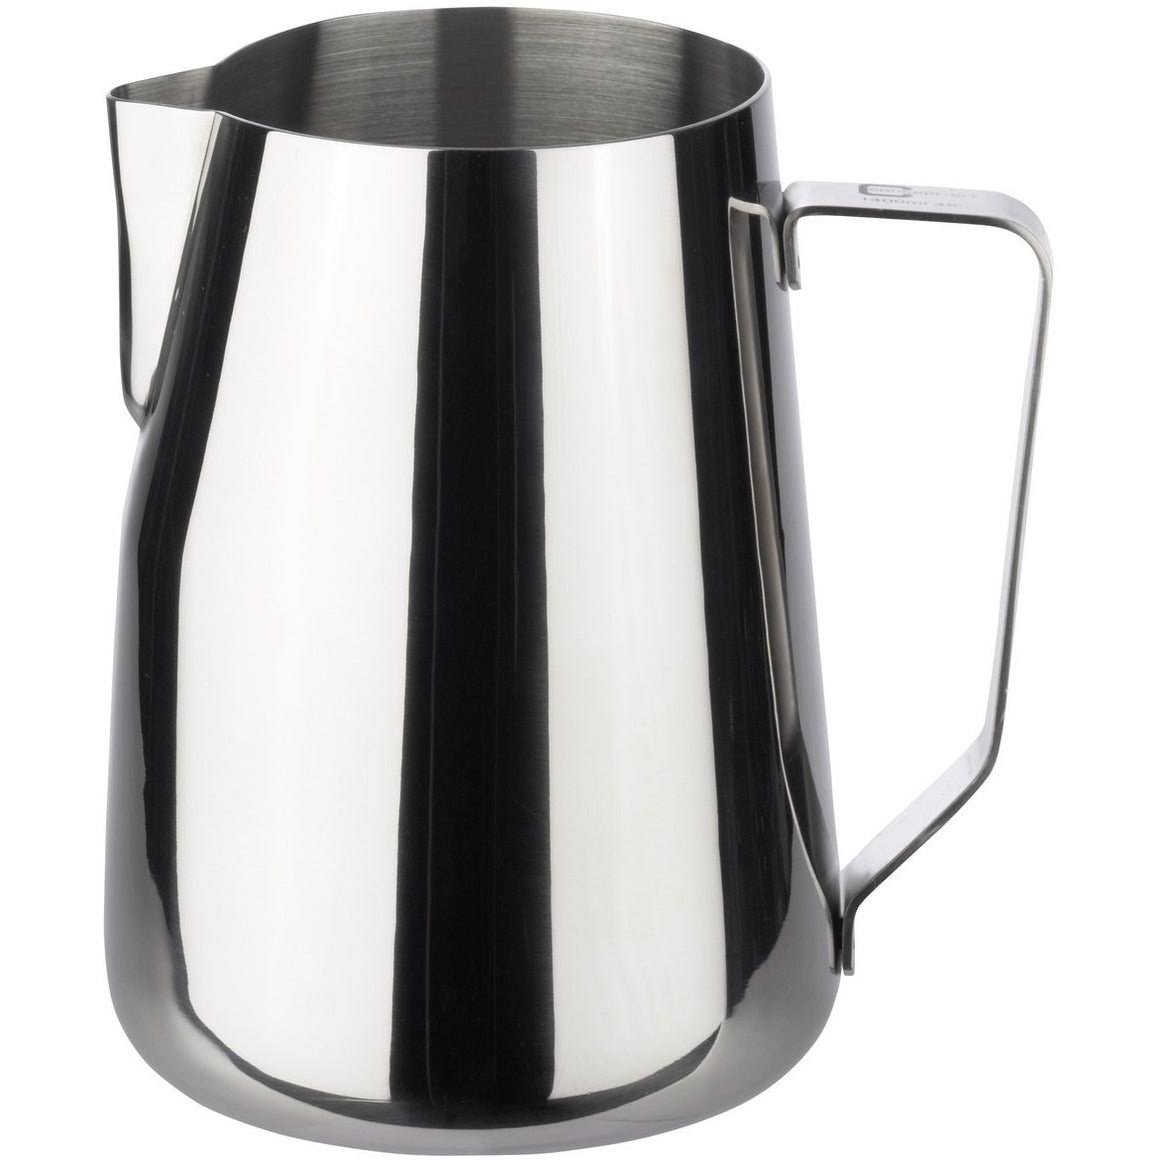 Stainless Steel Pitcher by Joe Frex